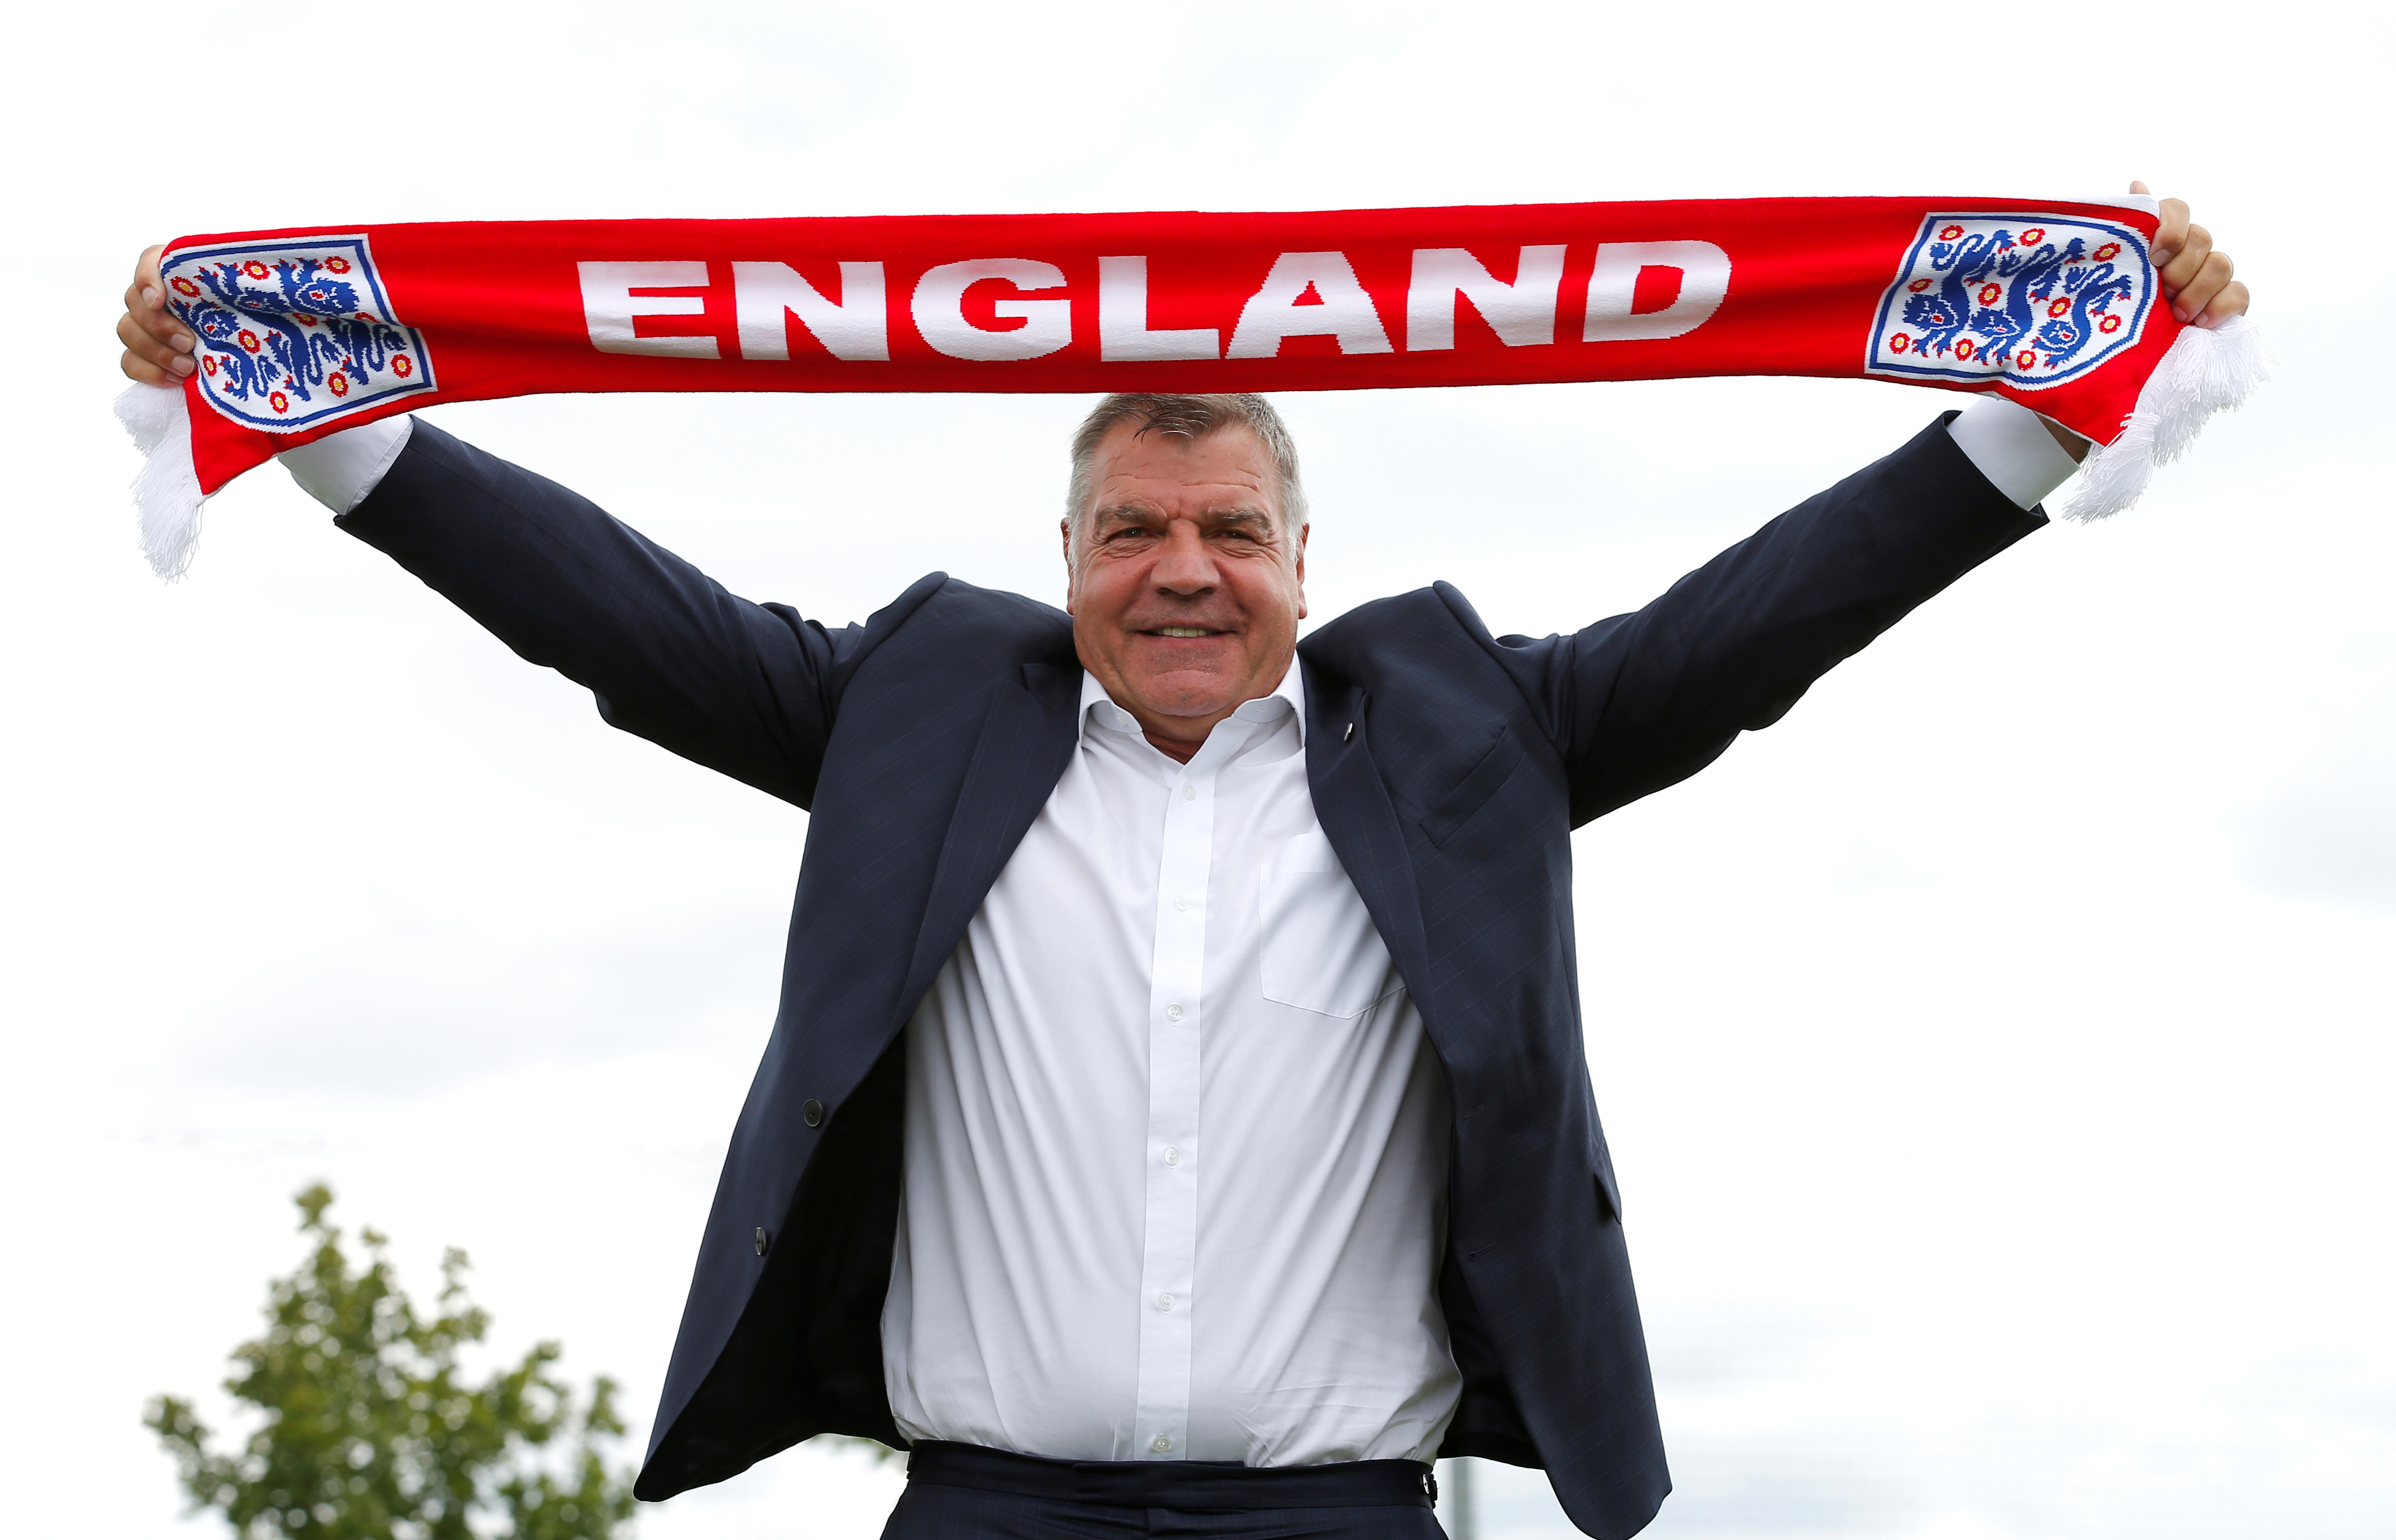 FILE PHOTO -  Britain Football Soccer - England - Sam Allardyce Press Conference - Hilton Hotel, St. George's Park, Burton upon Trent, Staffordshire - 25/7/16England manager Sam Allardyce poses after the press conferenceAction Images via Reuters / Andrew Couldridge/File Photo